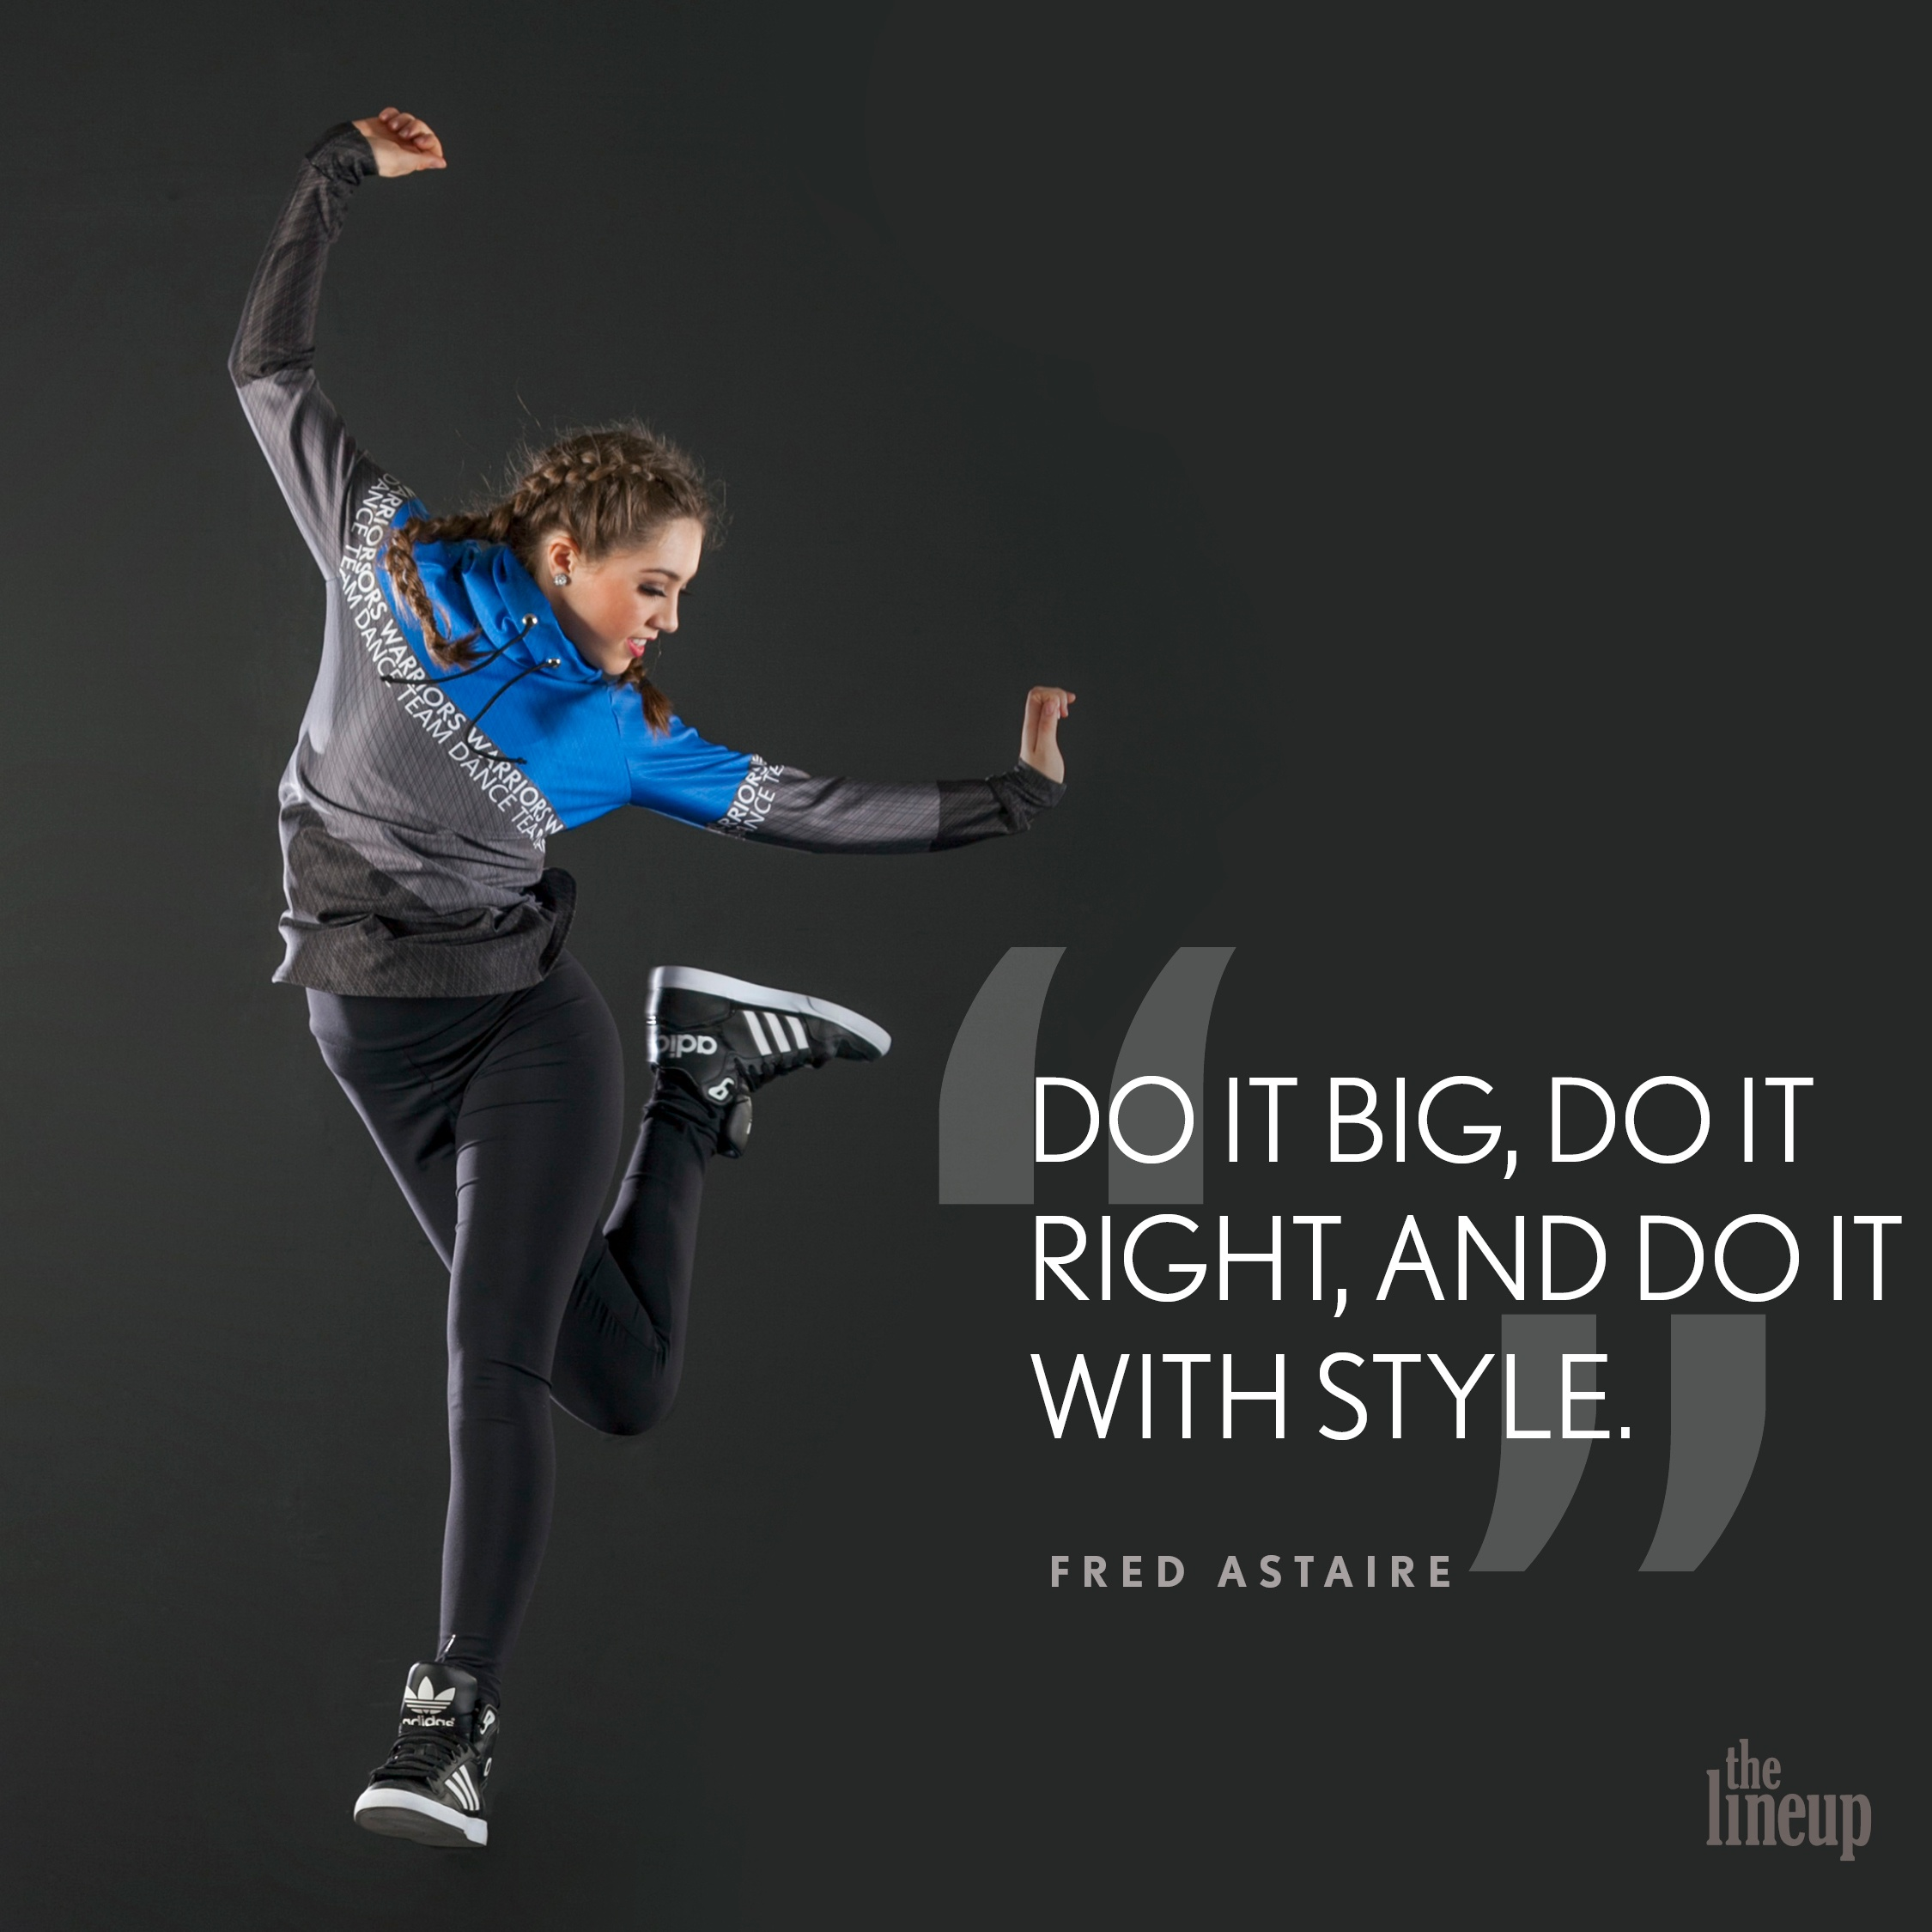 """""""Do it big, do it right, and do it with style."""" - Fred Astaire Motivational Quotes for Dancers"""